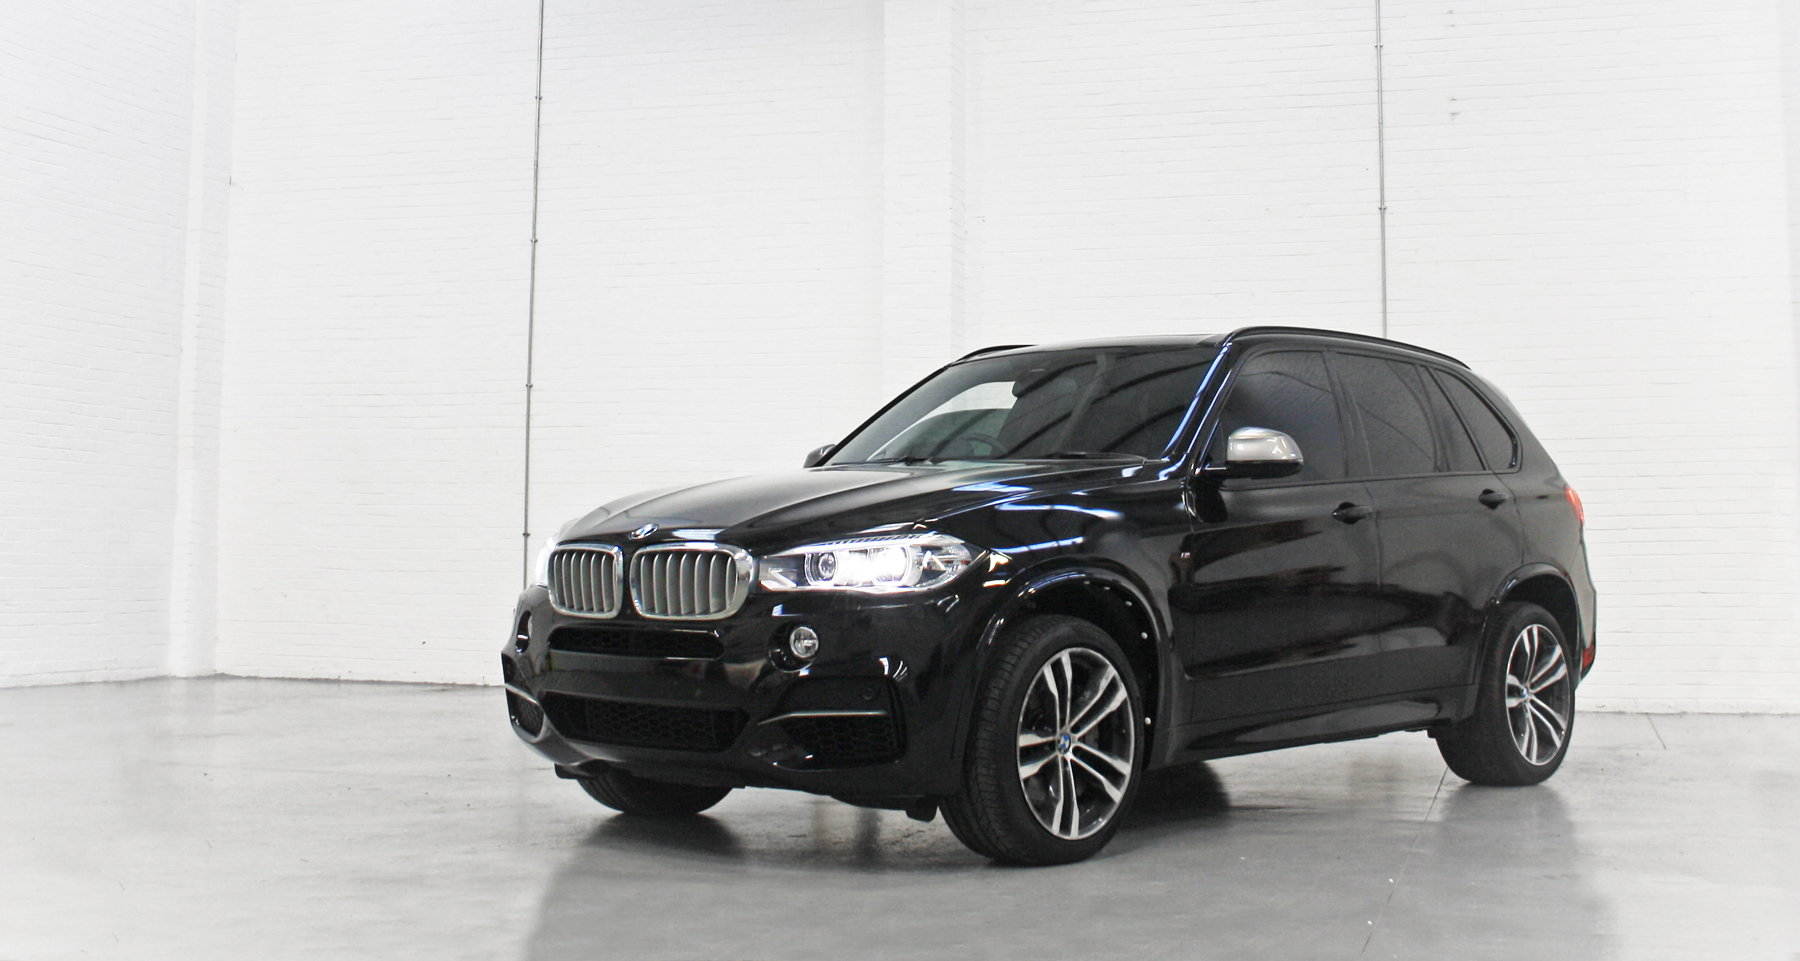 BMW-X3-Gloss-Metallic-Black-3m1080-G212-FB